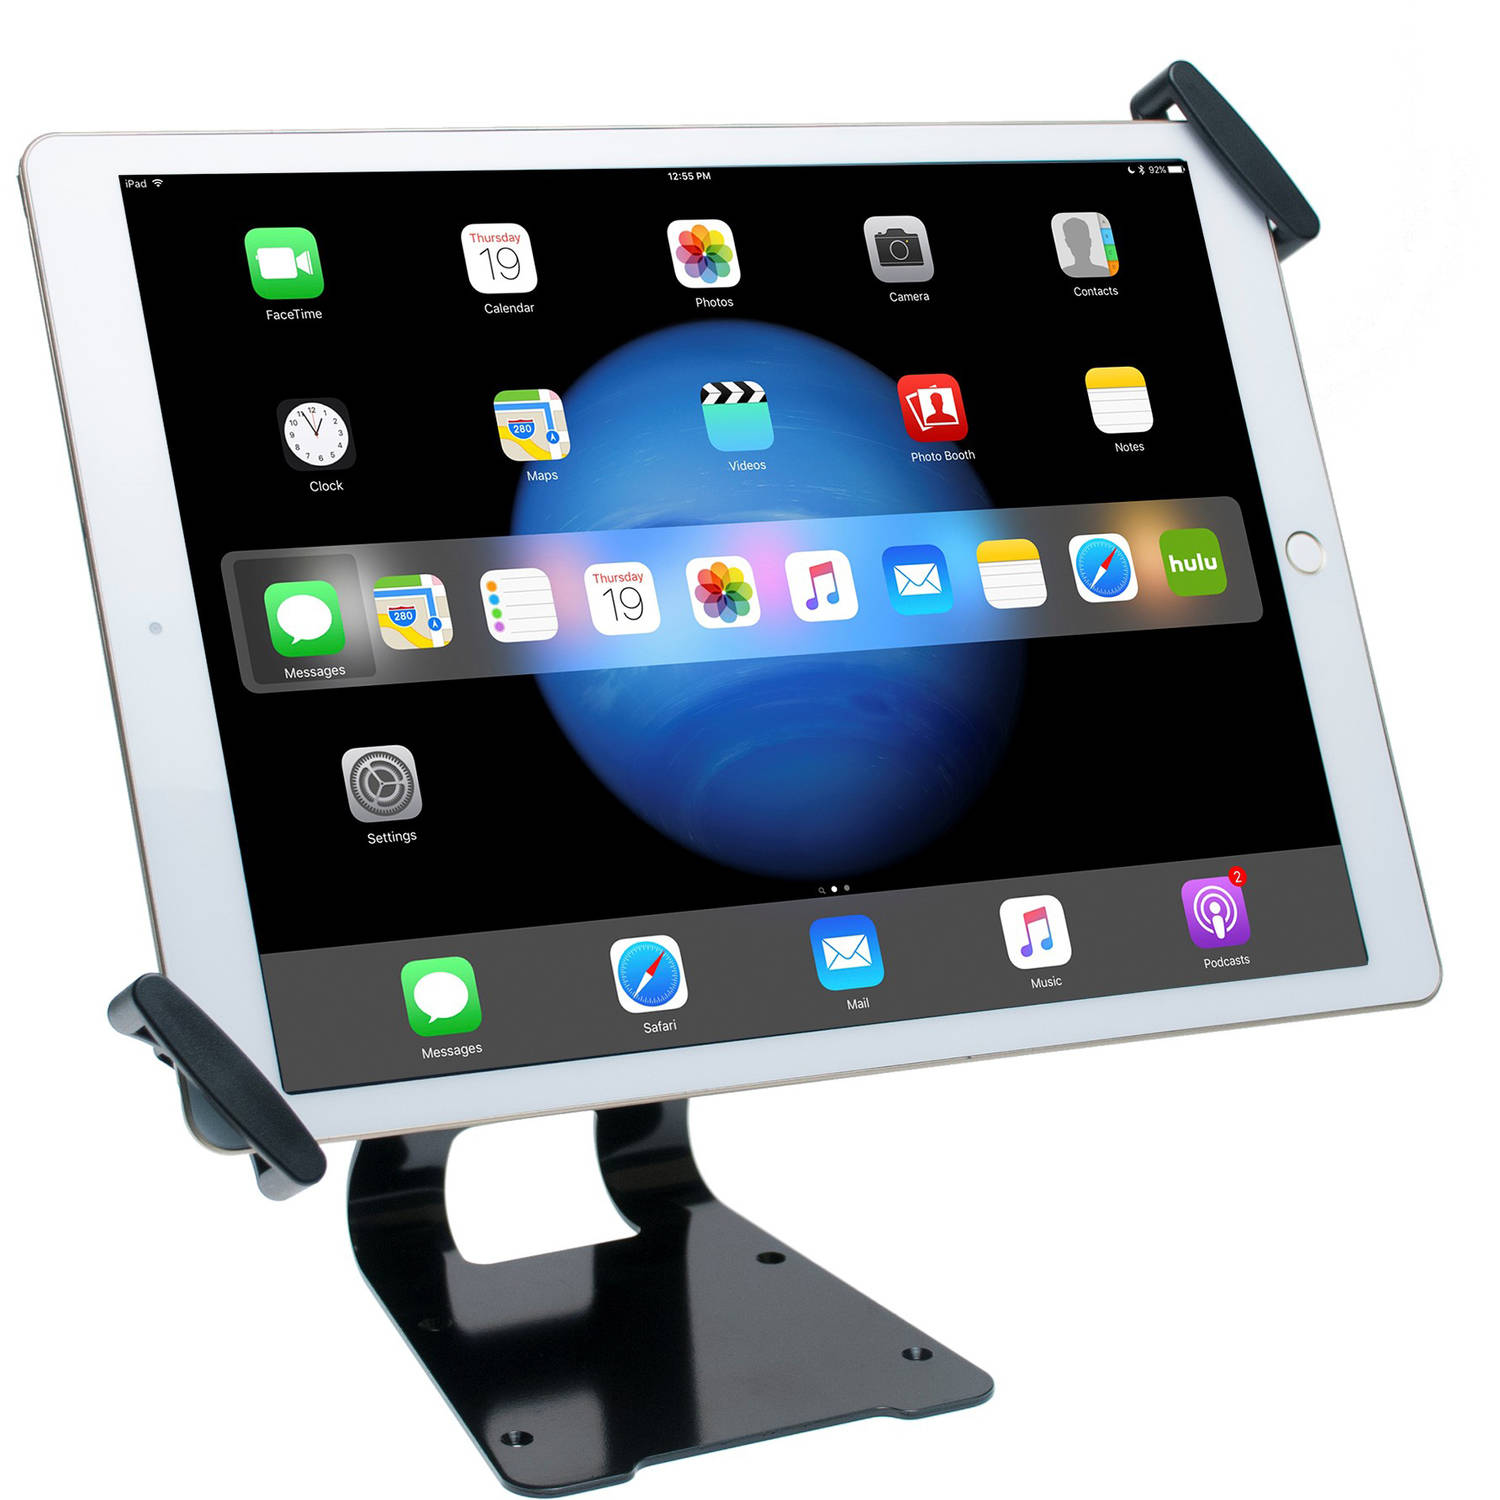 CTA Digital Adjustable Anti-Theft Security Grip and Stand for Large Tablets